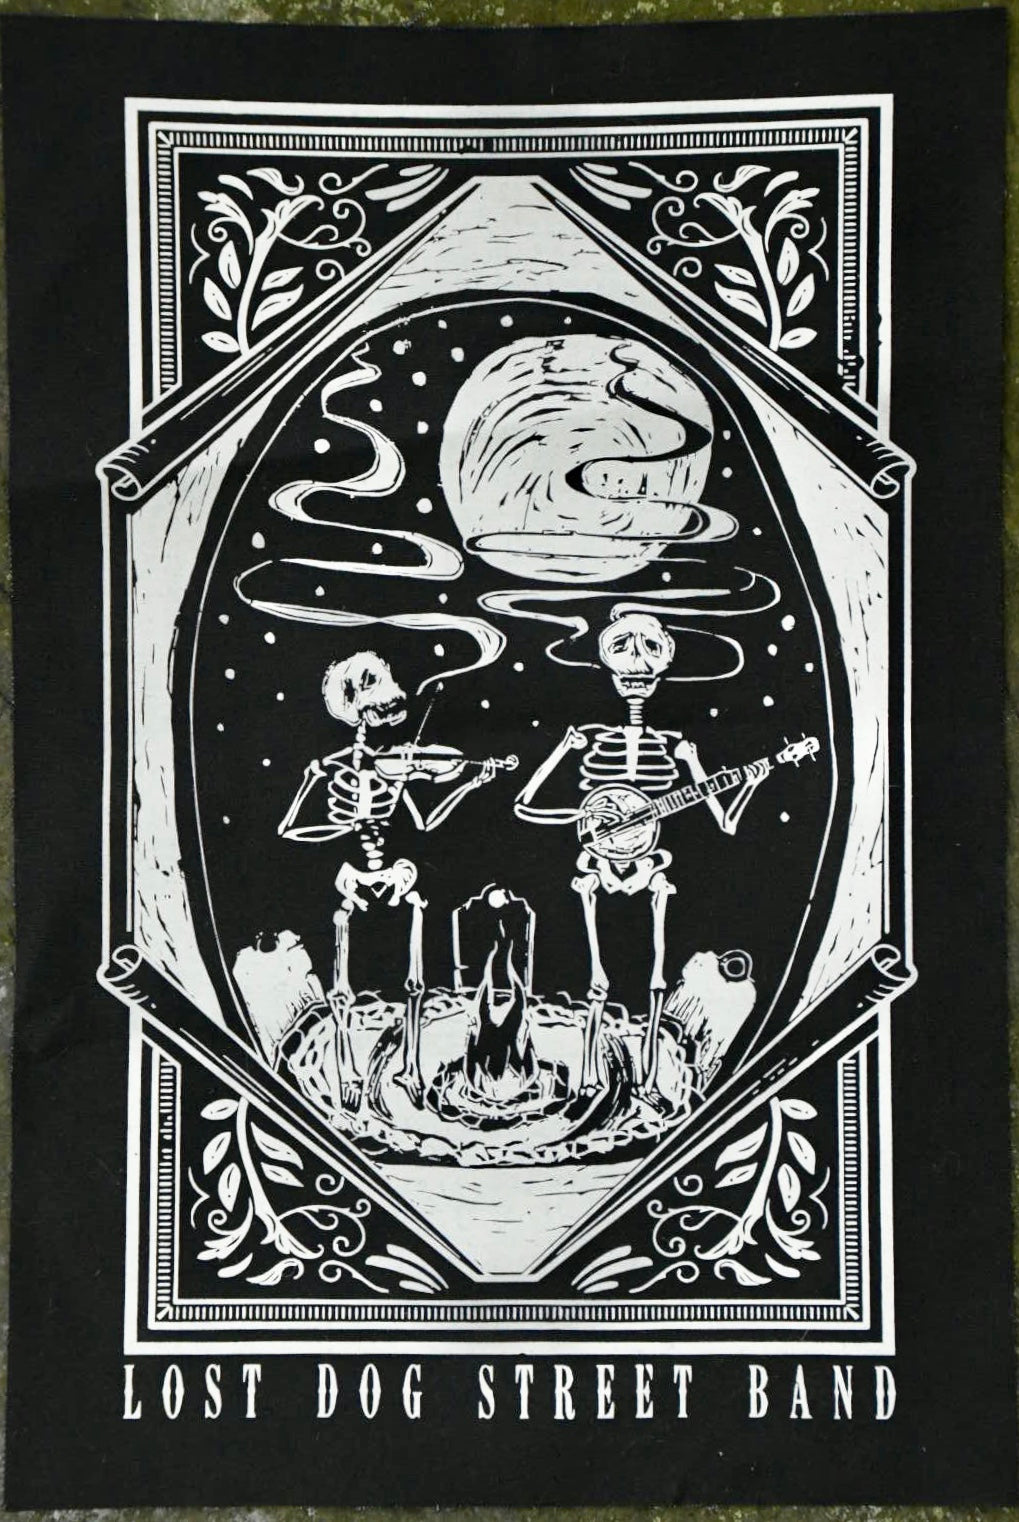 Merch: Lost Dog Street Band Back Patch